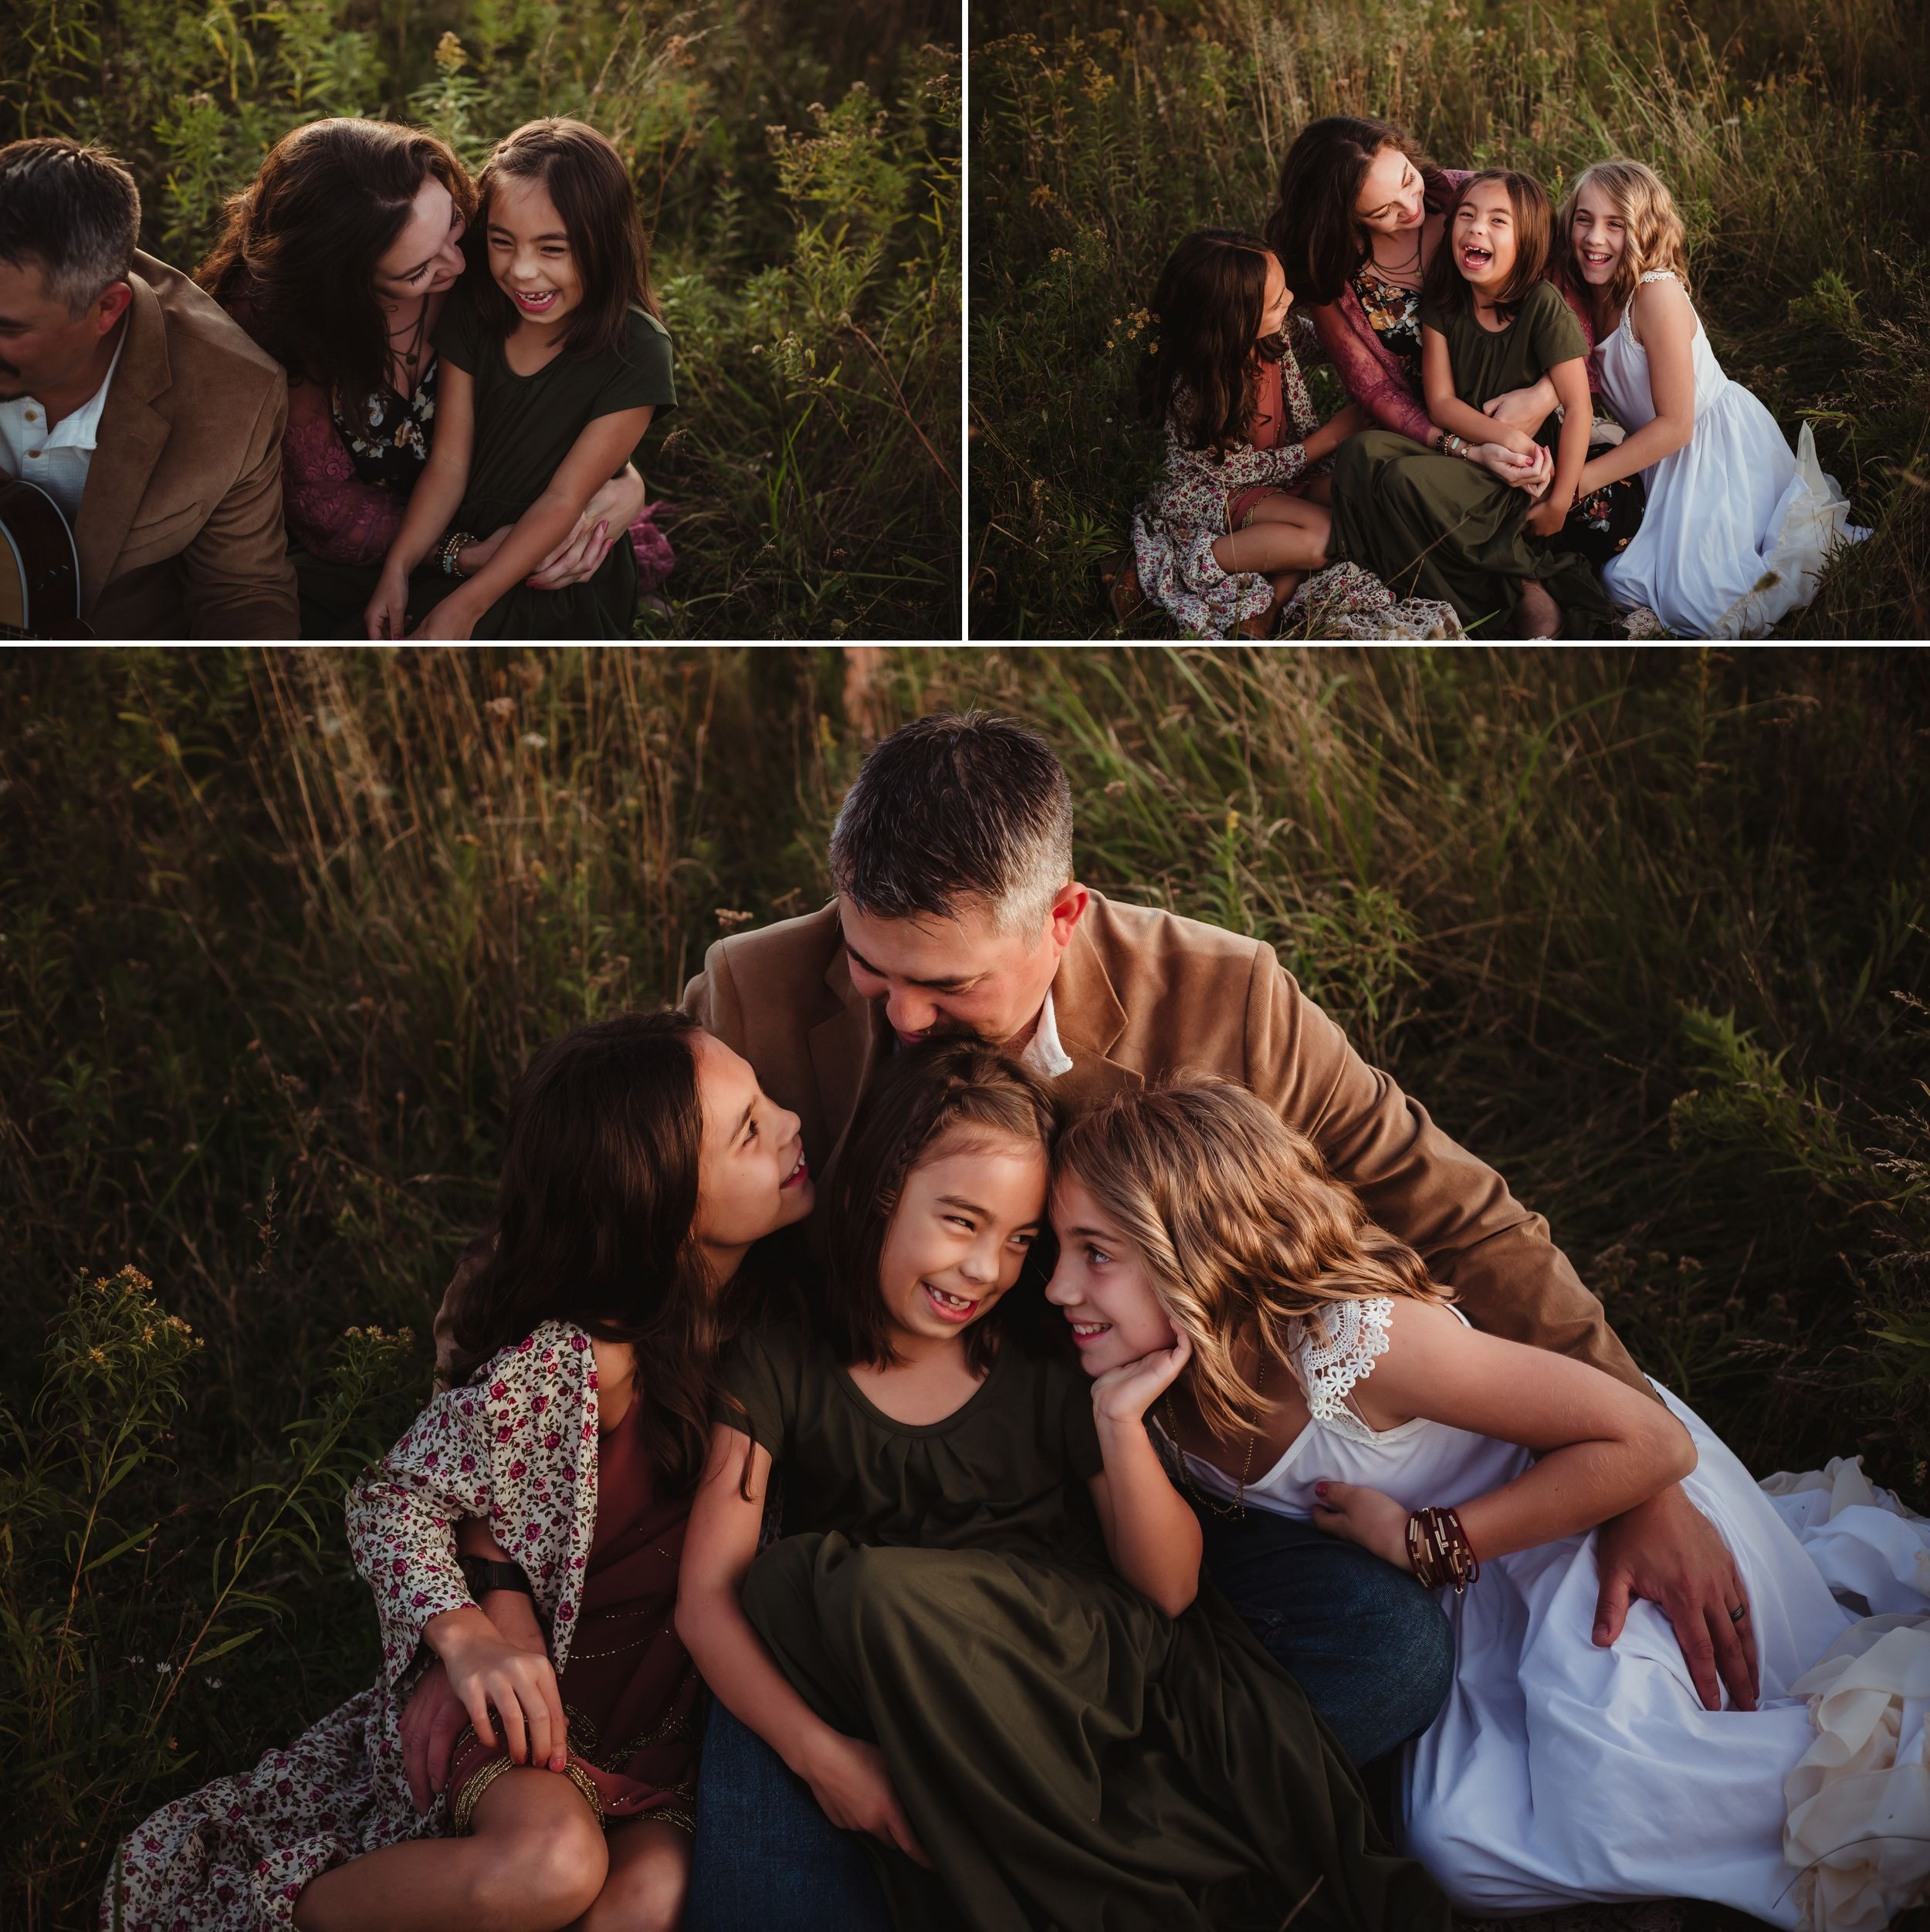 Collage of daughters cuddling their parents while sitting in a field.